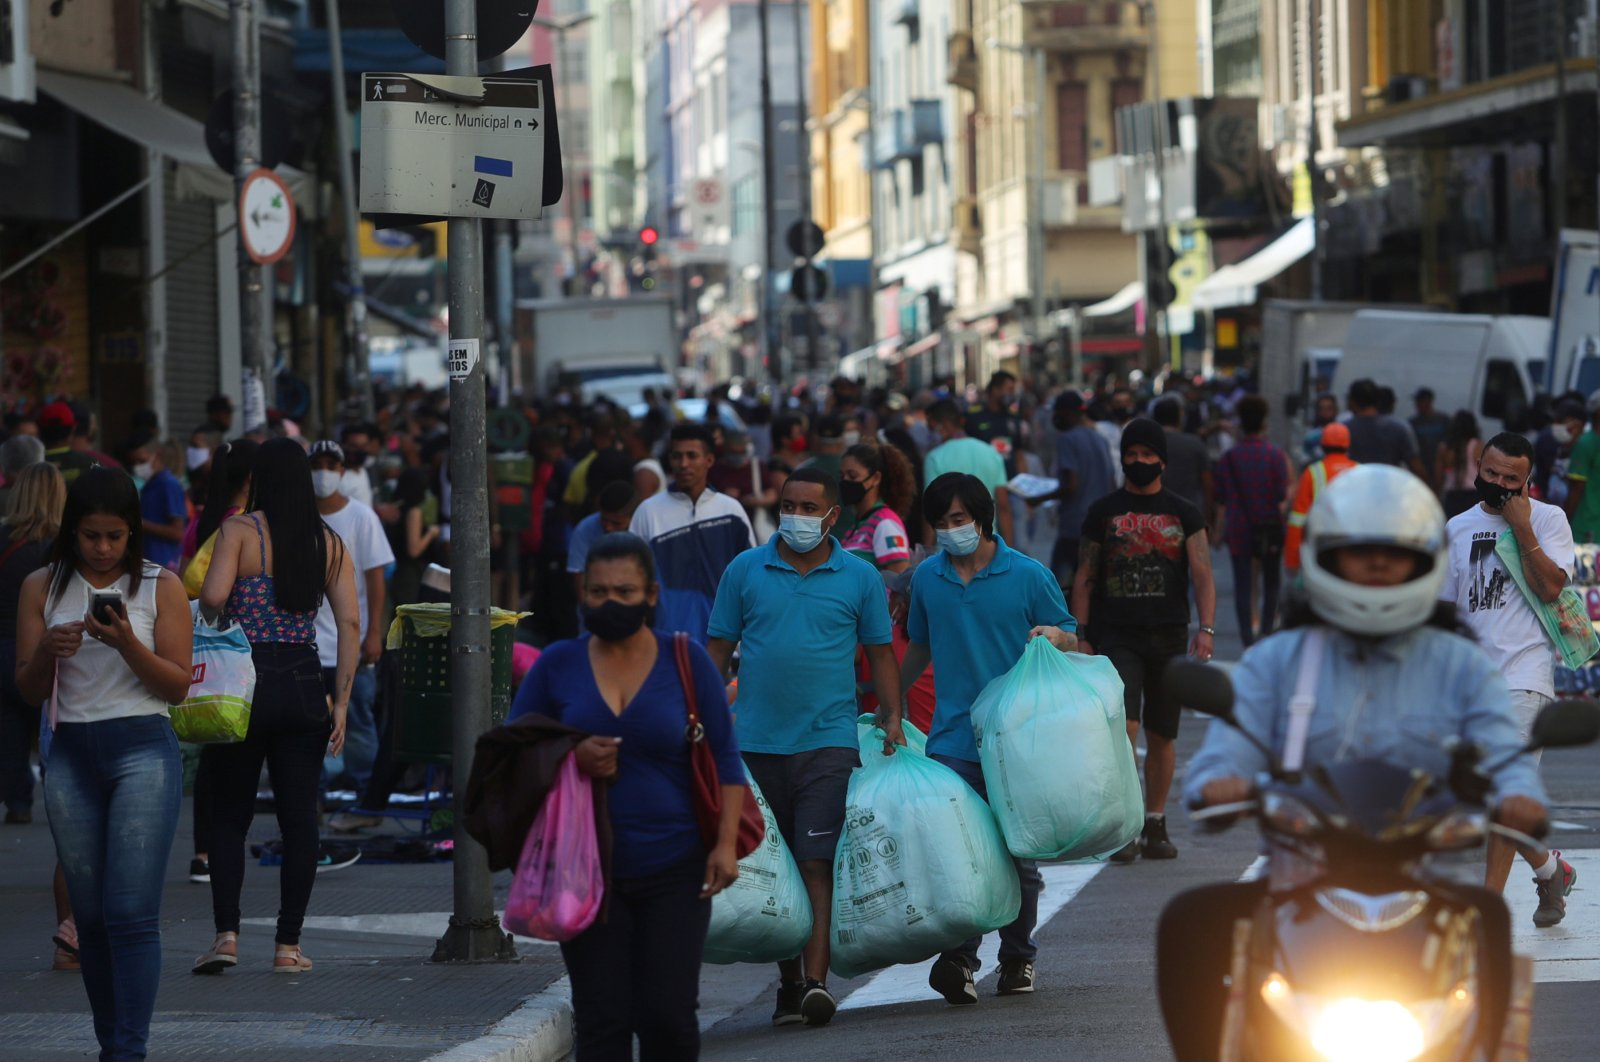 People walk with bags at a popular shopping street, Sao Paulo, Brazil, June 19, 2020. (REUTERS Photo)